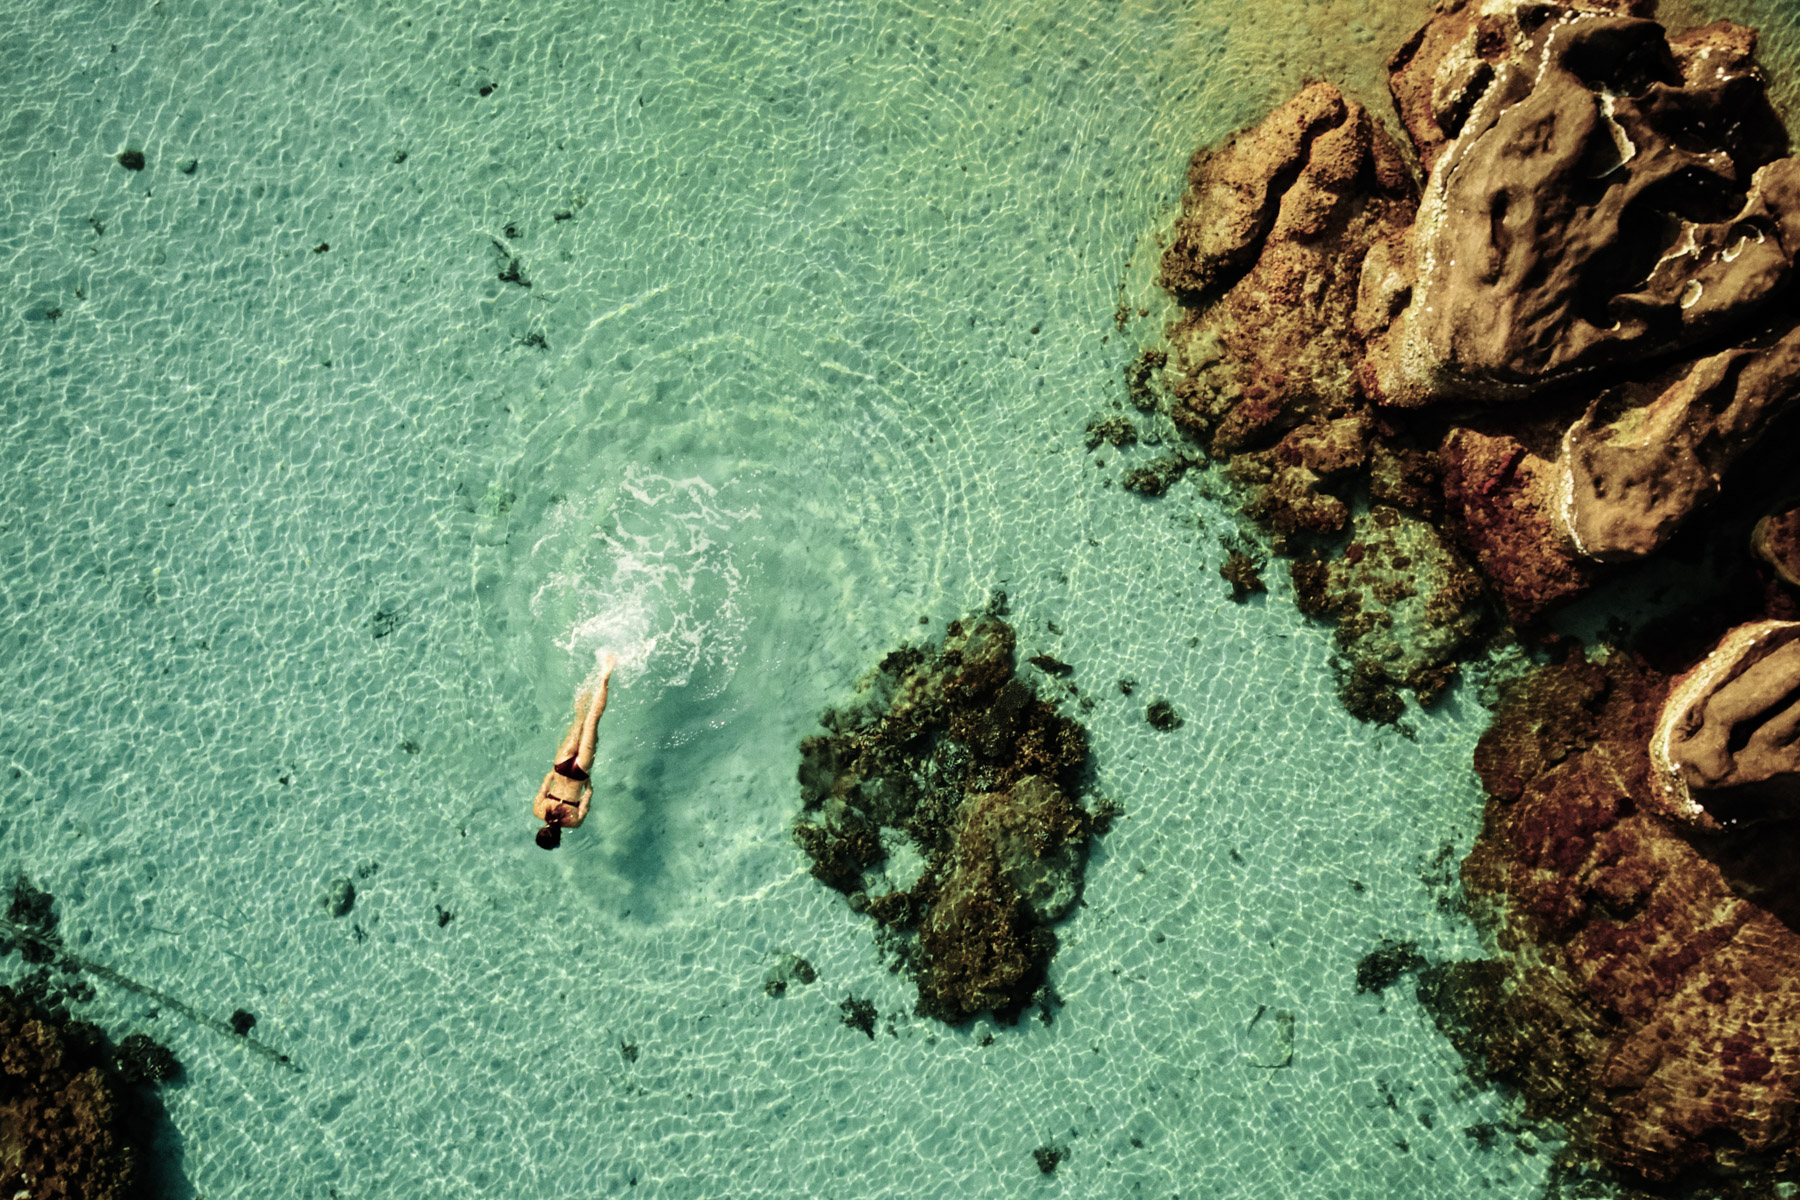 A woman swims off the coast of Phu Quoc island in southern Vietnam.